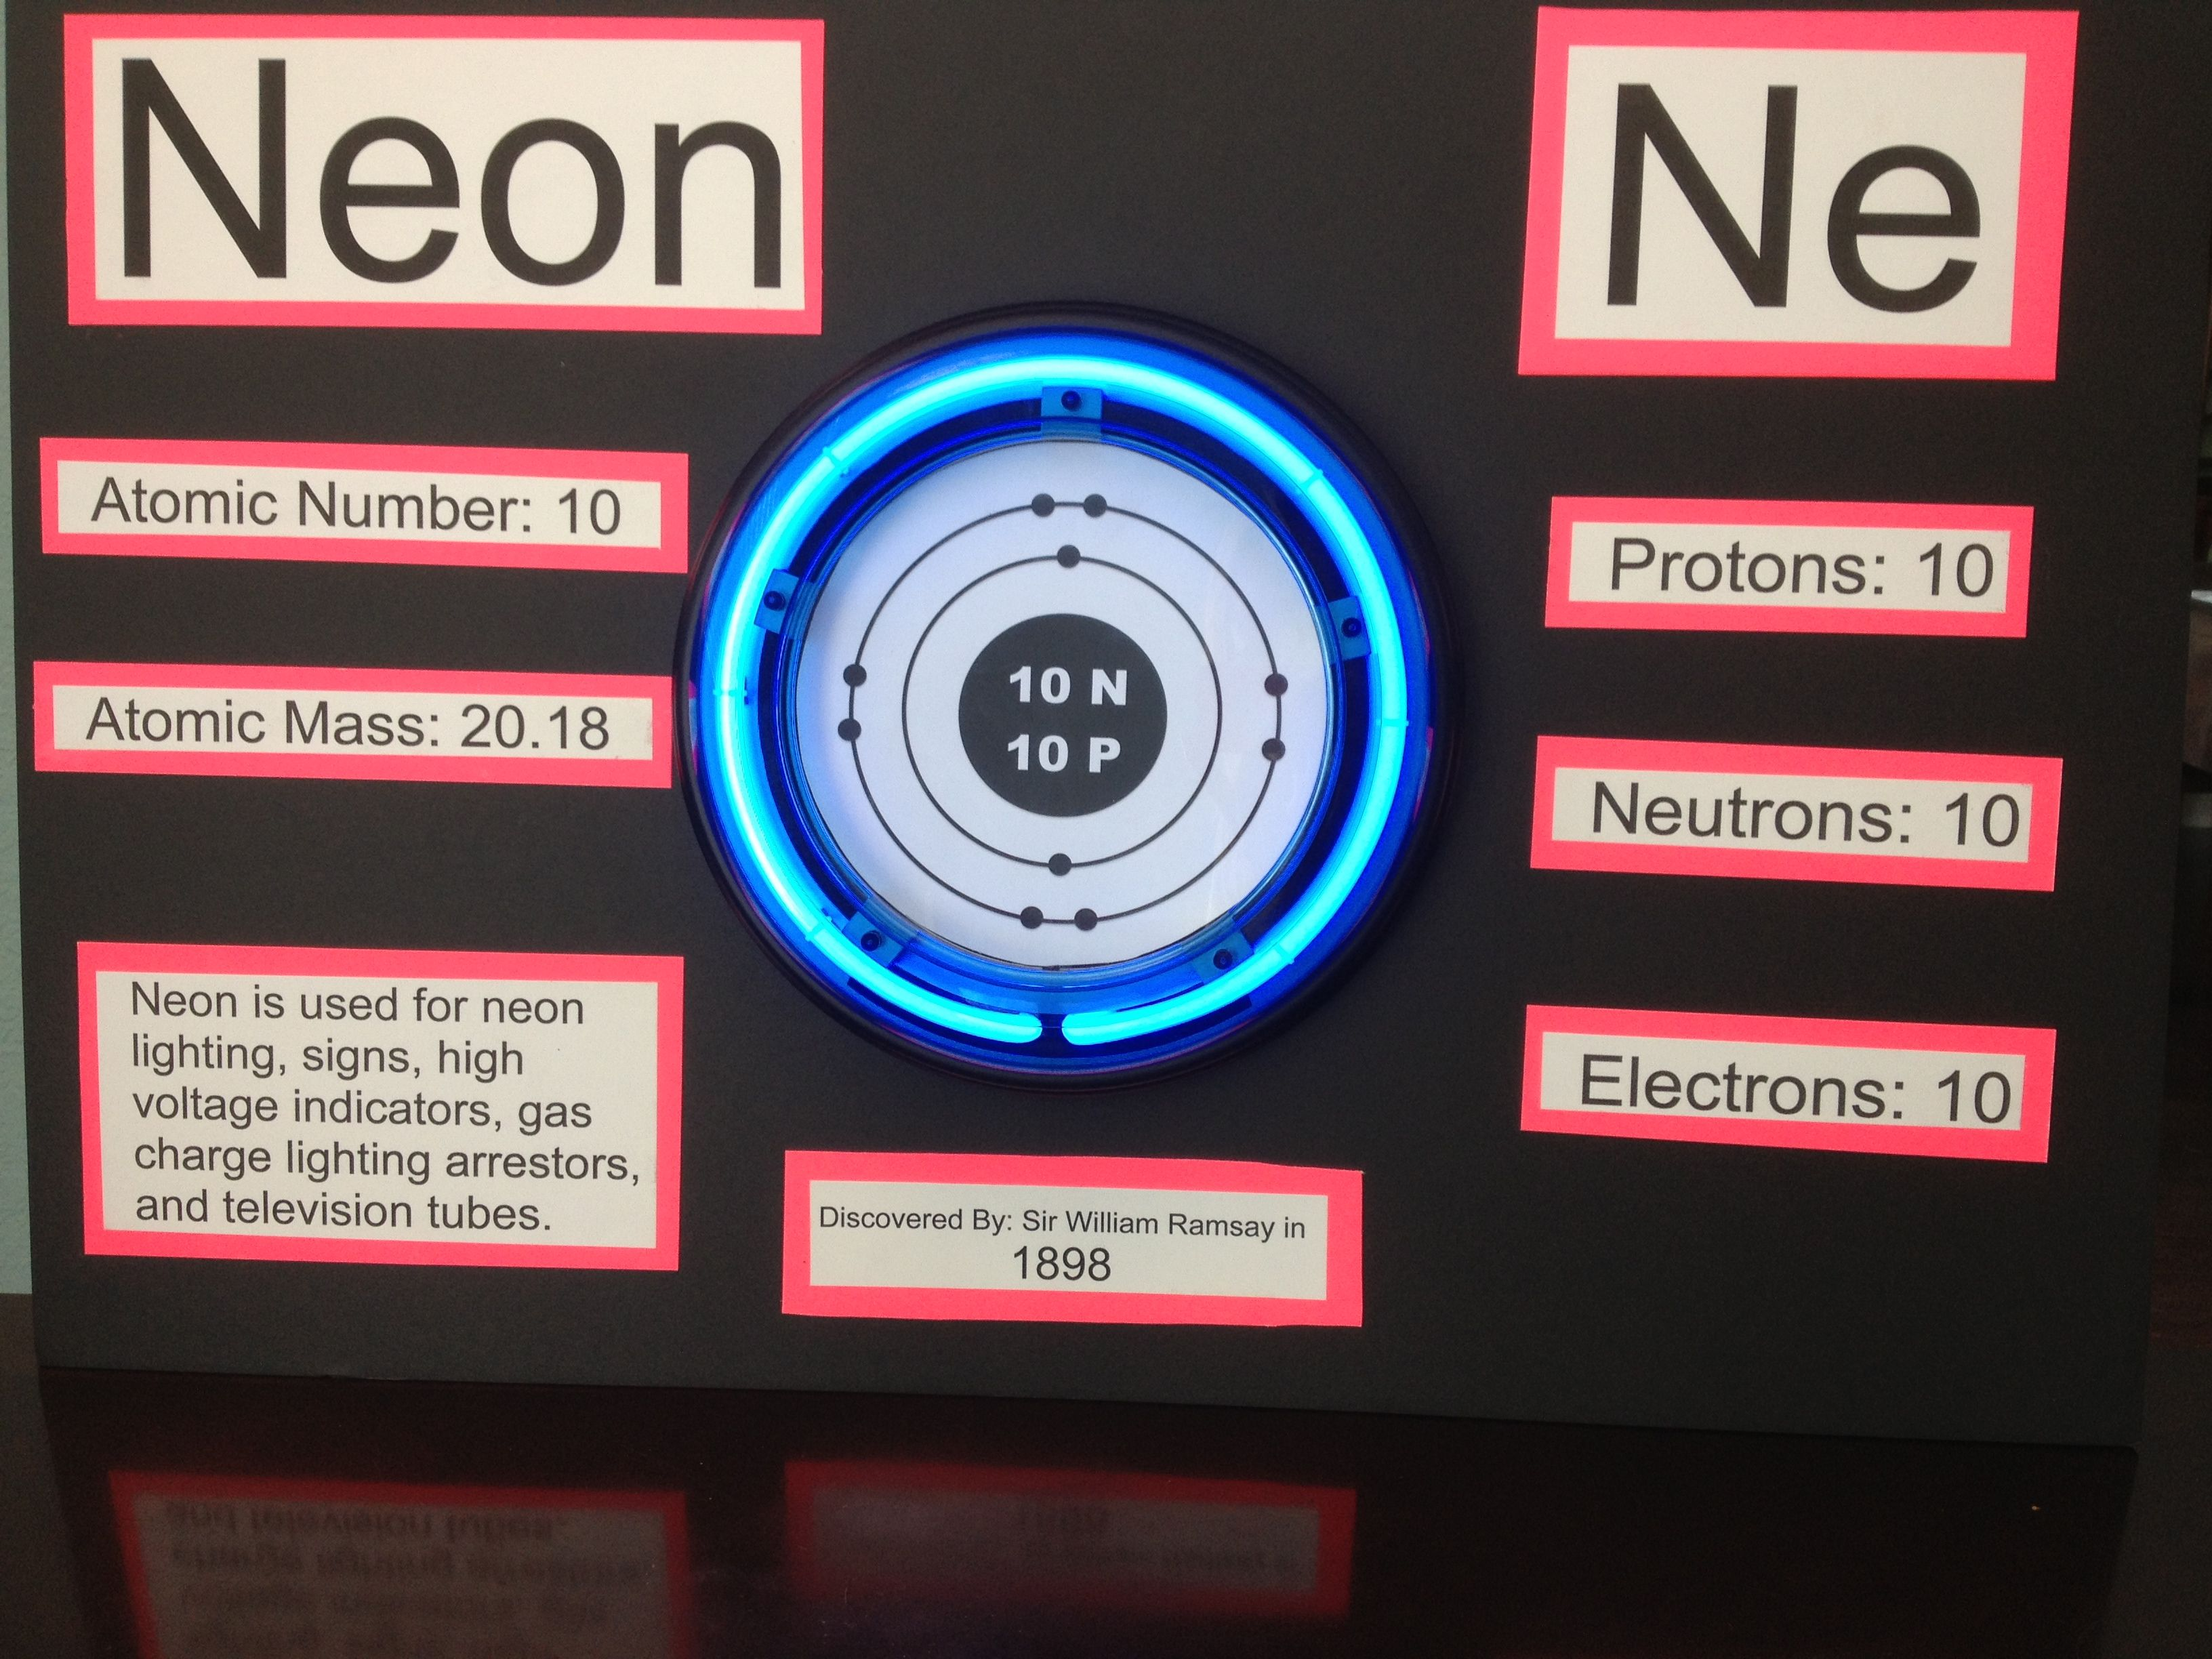 hight resolution of neon element